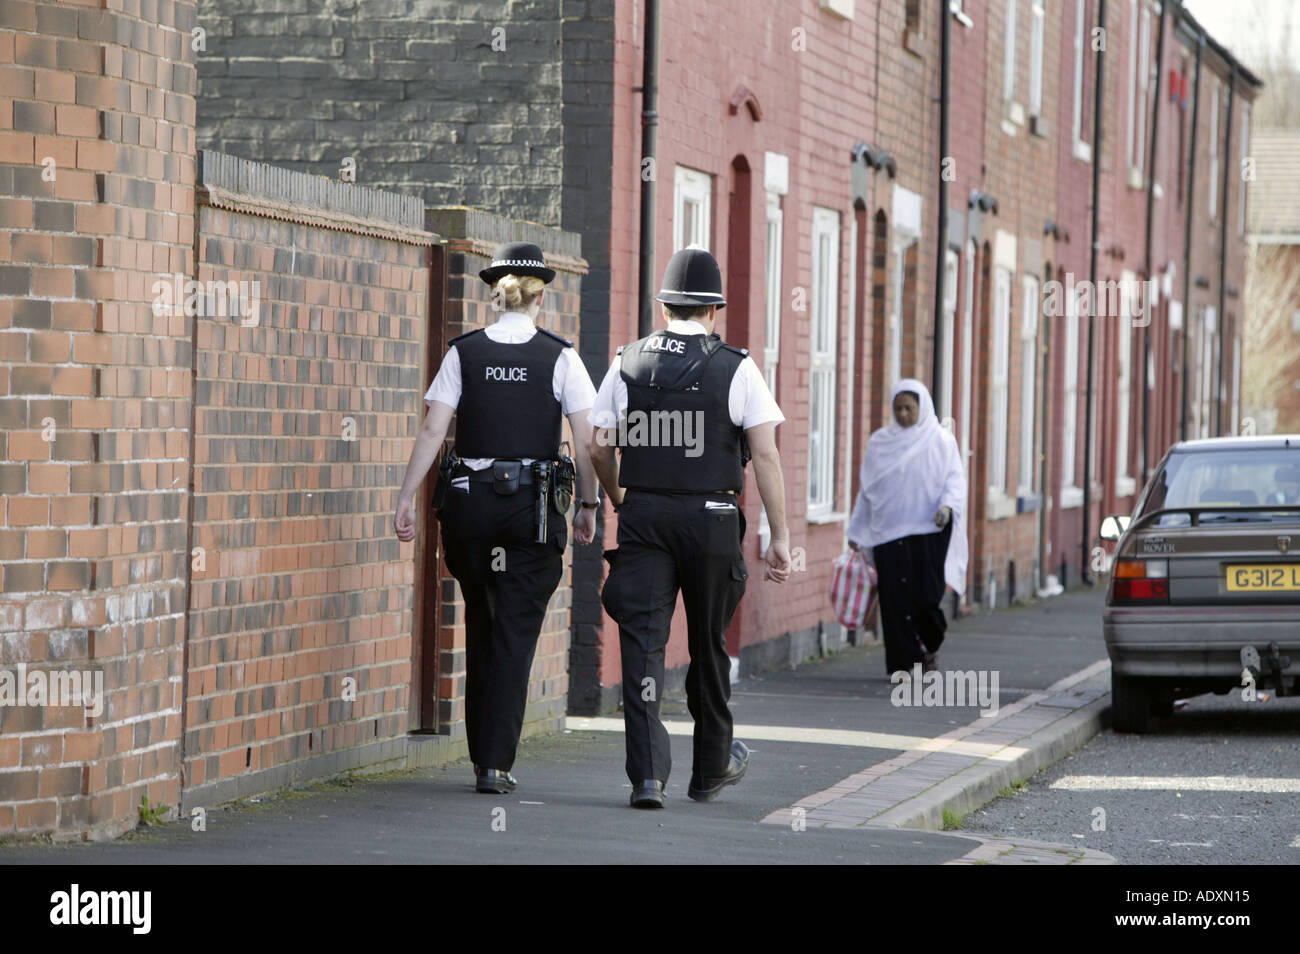 Police patrolling the streets of Tipton in the West Midlands UK - Stock Image